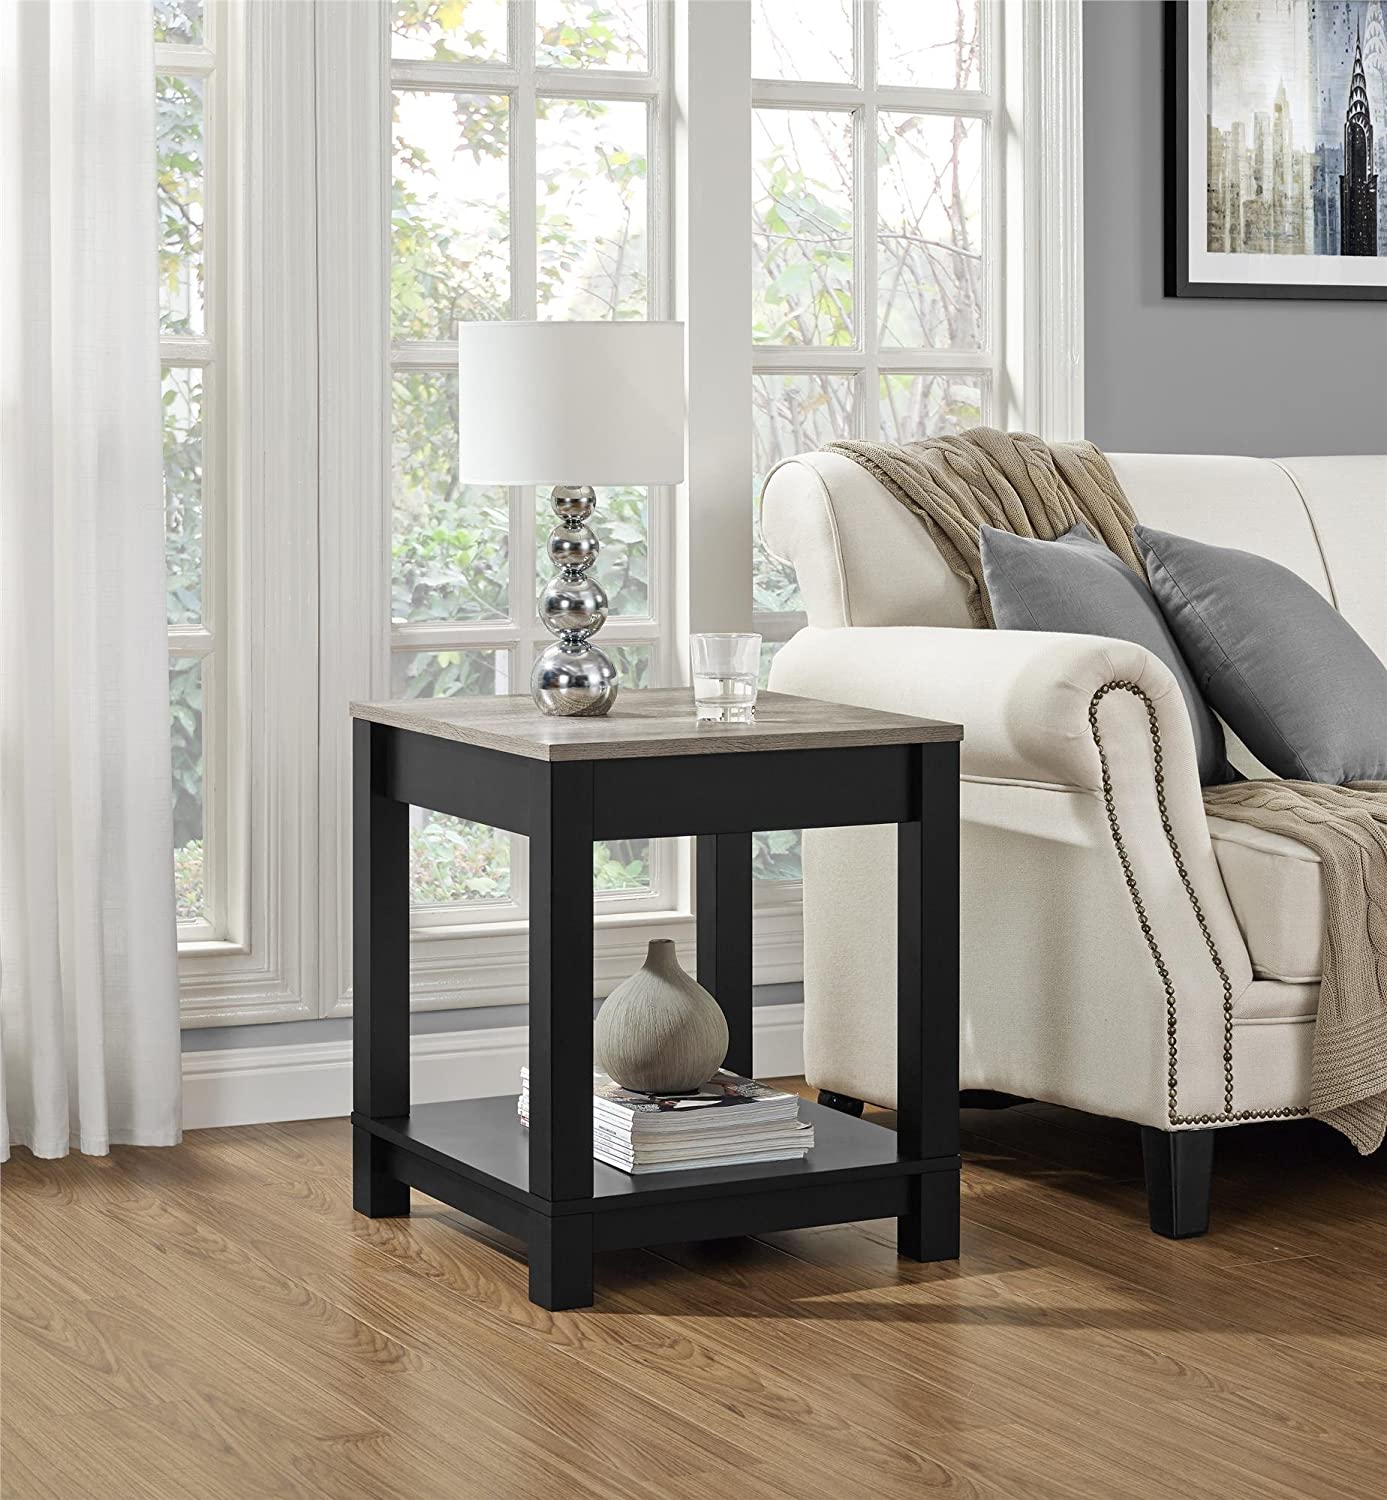 Home Furnishings Amazoncom Ameriwood Home Carver End Table Black Kitchen Dining